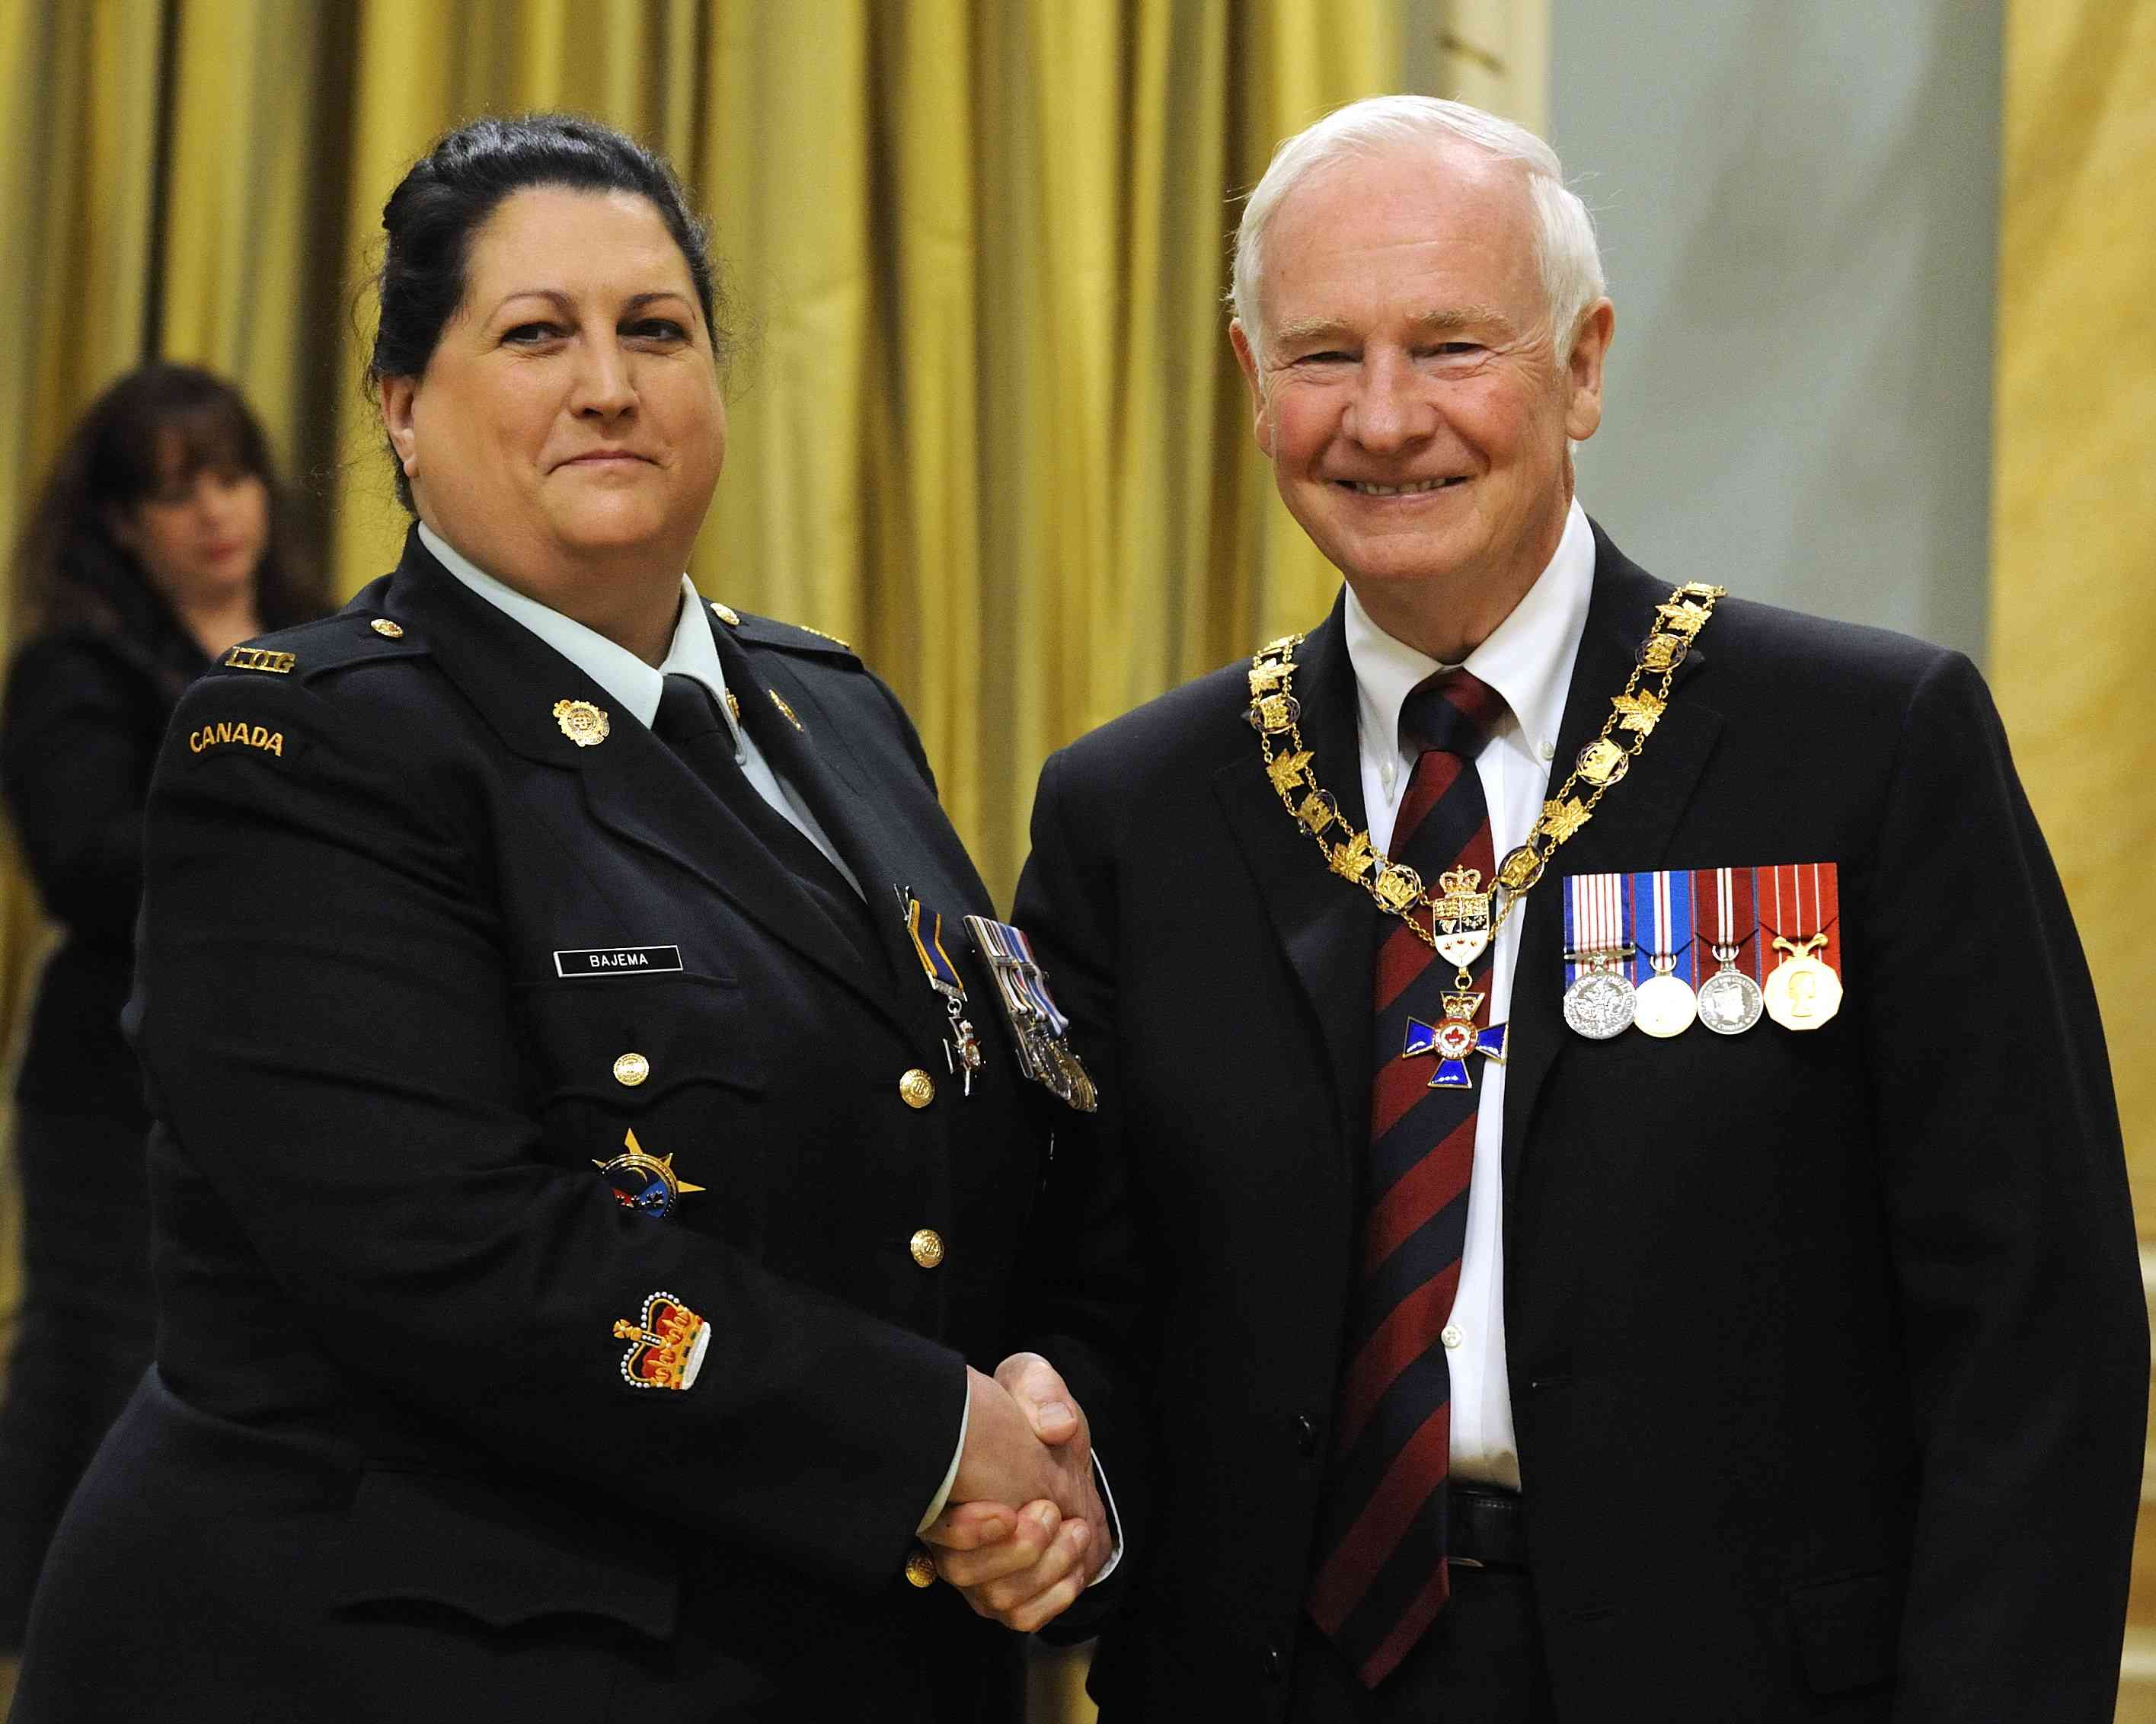 His Excellency presented the Order of Military Merit at the Member level (M.M.M.) to Warrant Officer Barbara Bajema, M.M.M., C.D., Canadian Forces Joint Signal Regiment